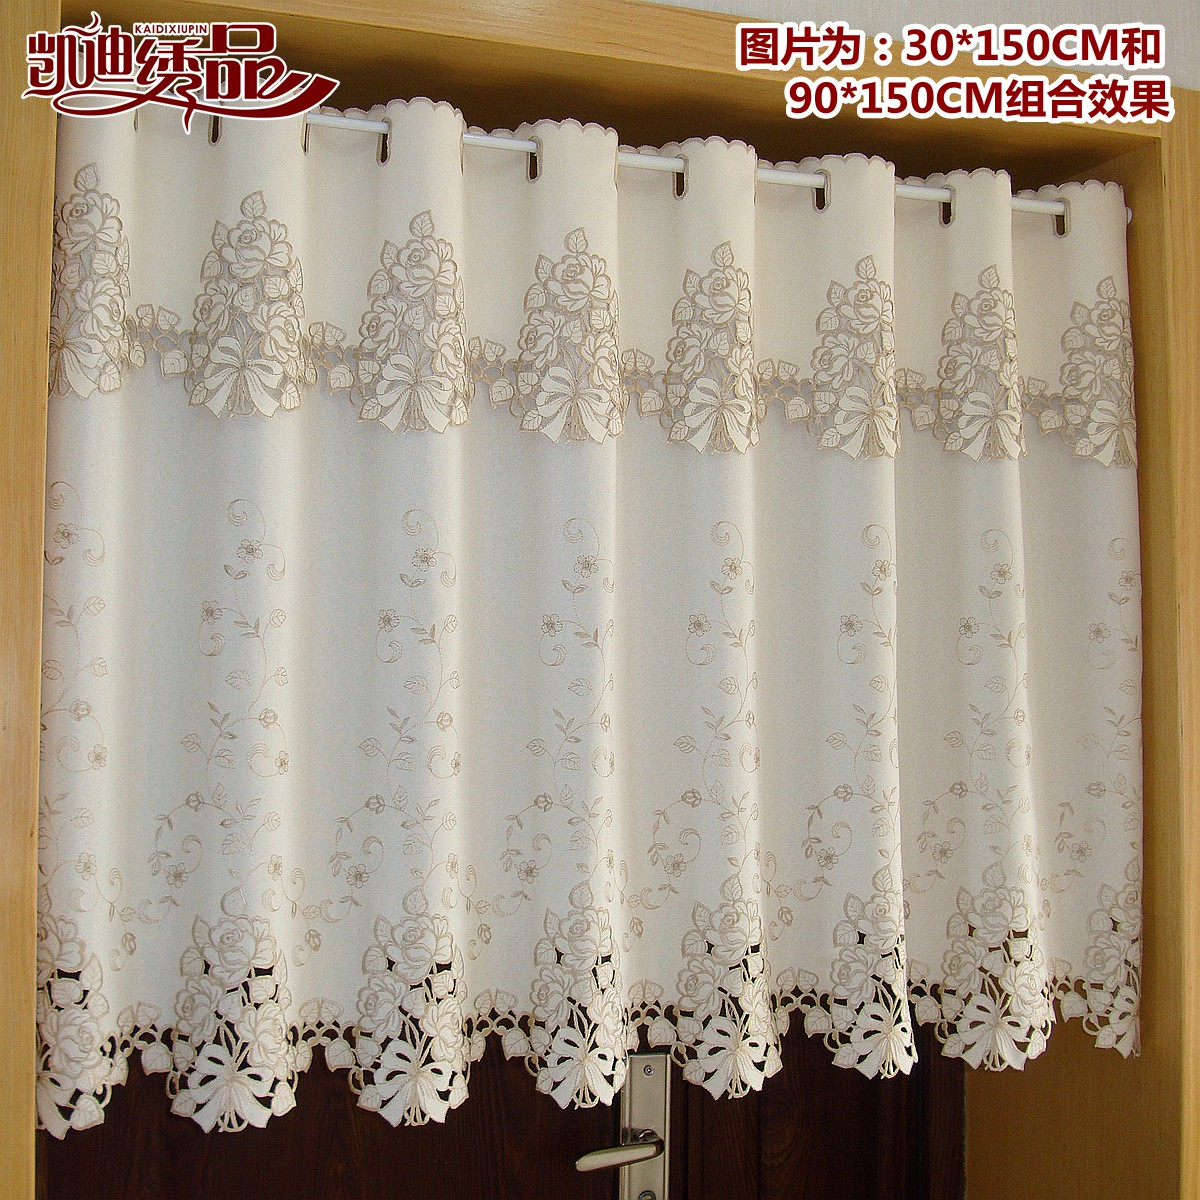 Kitchen Curtain Fabric: Quality Tube Curtain Embroidery Fabric Curtain Finished